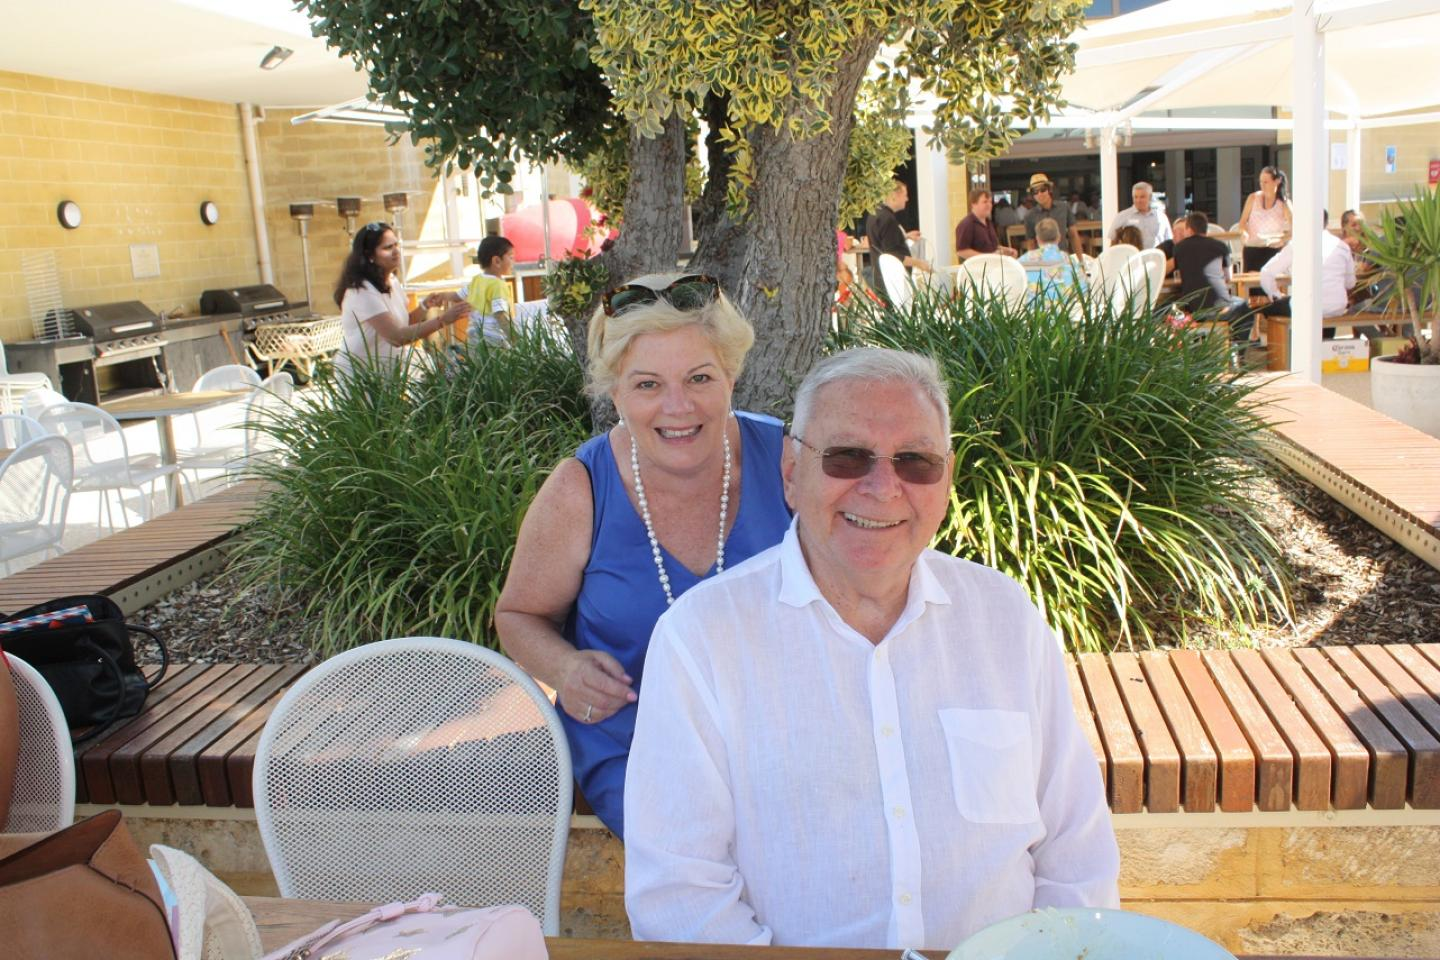 Ausplow Managing Director John Ryan AM and his partner Bernadette Turner enjoyed mixing with the staff at yesterday's wind-up held at the Fremantle Sailing Club.